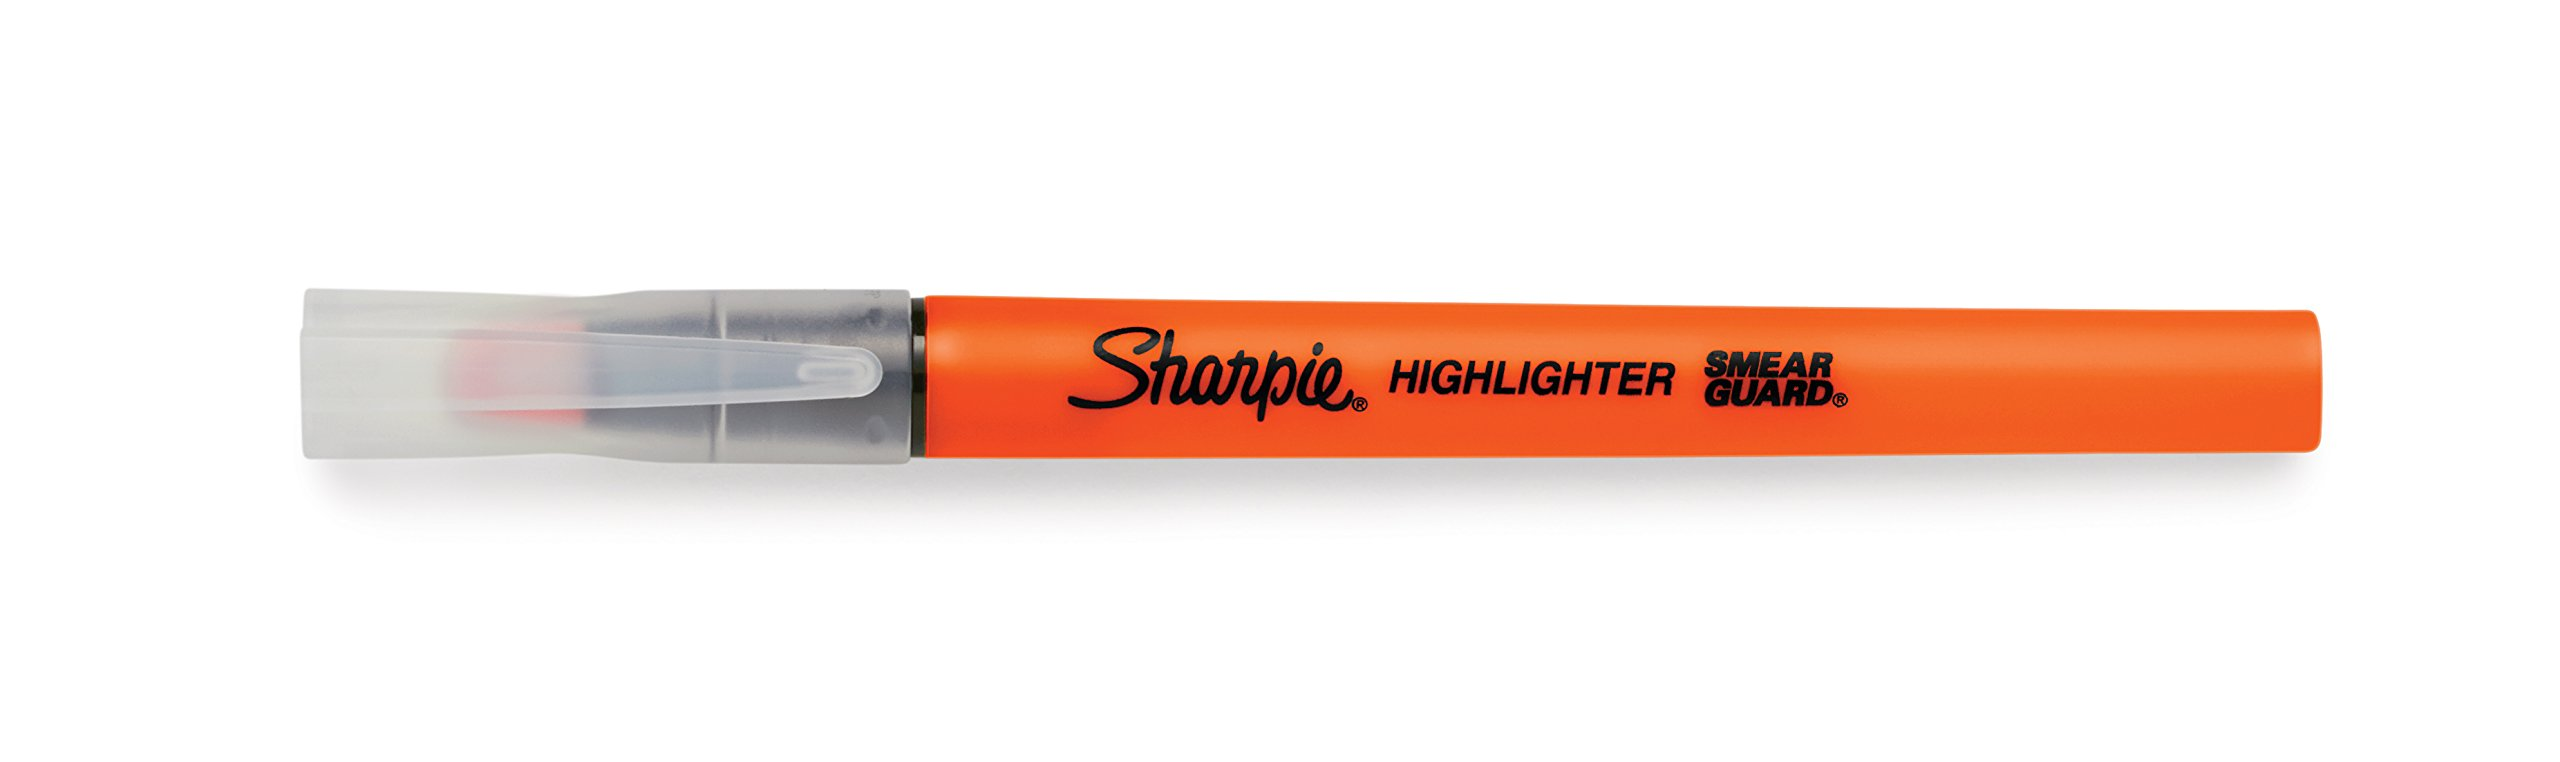 Sharpie Clear View Highlighter Stick, Assorted, 8 Pack (1966798) by Sharpie (Image #11)